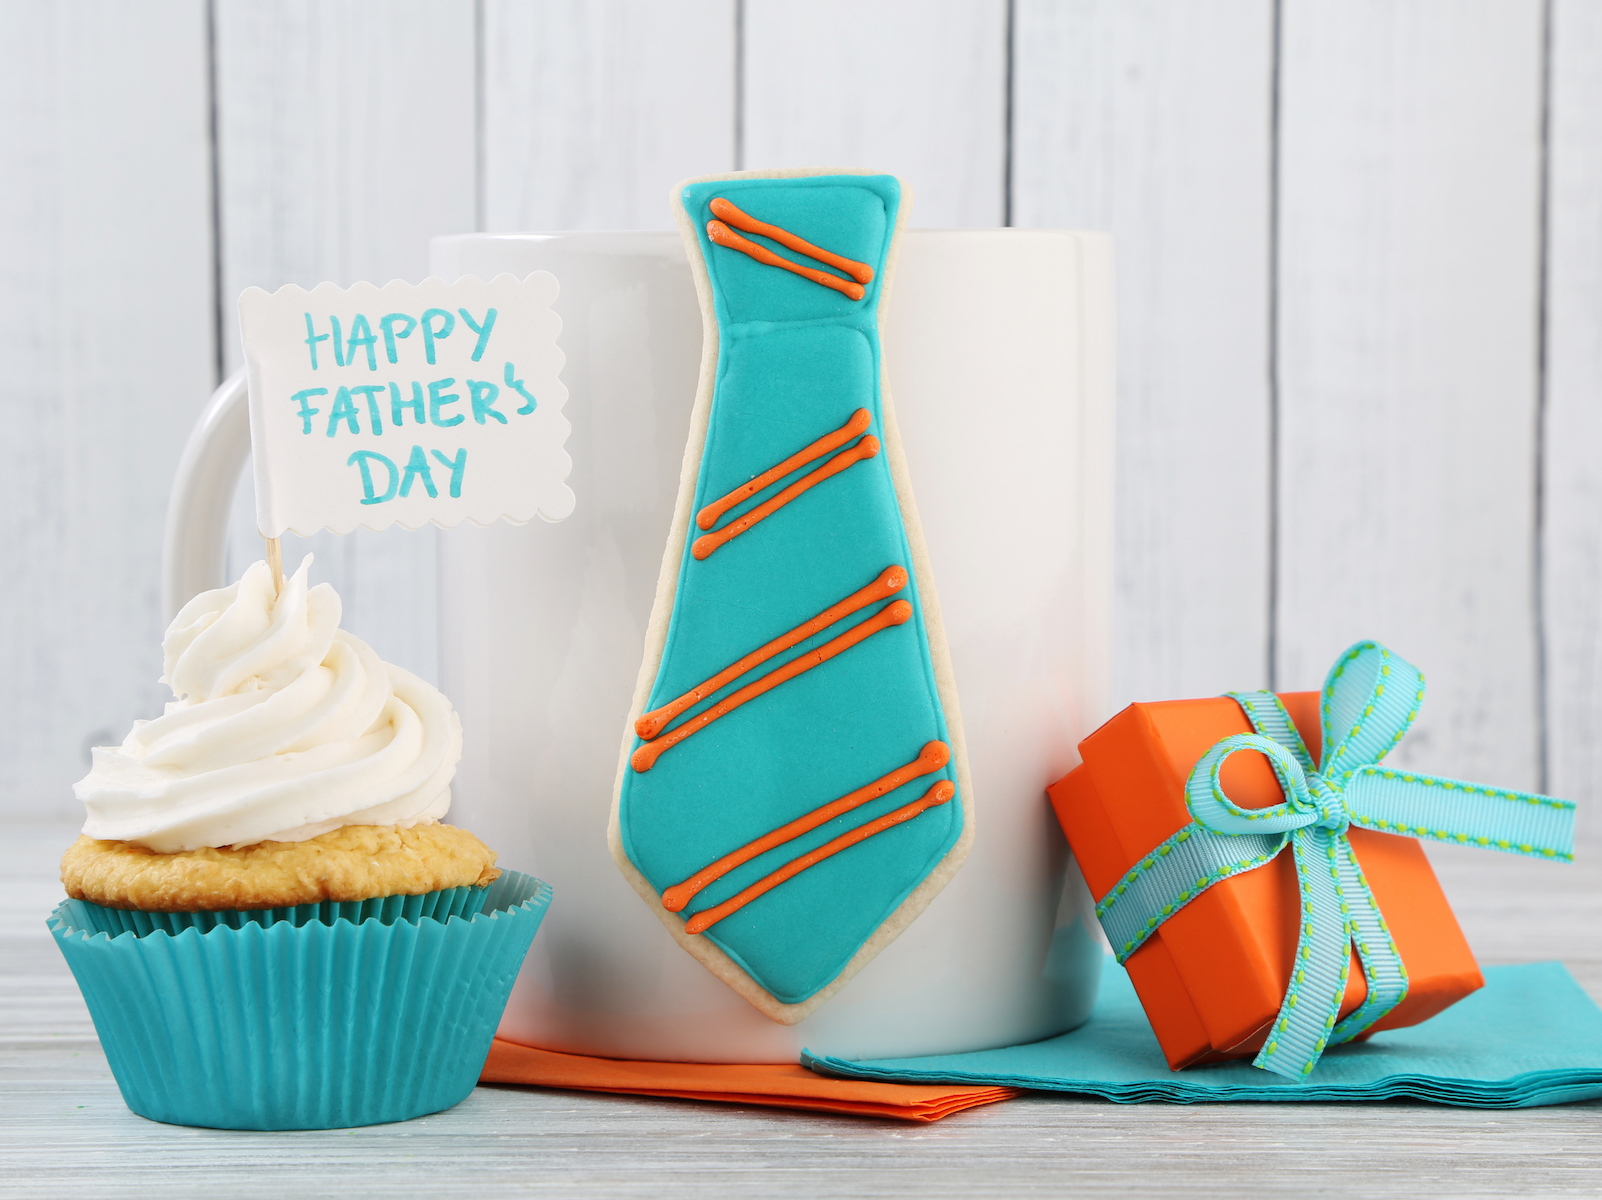 fathers-day-deals-FT-BLOG0618.jpg